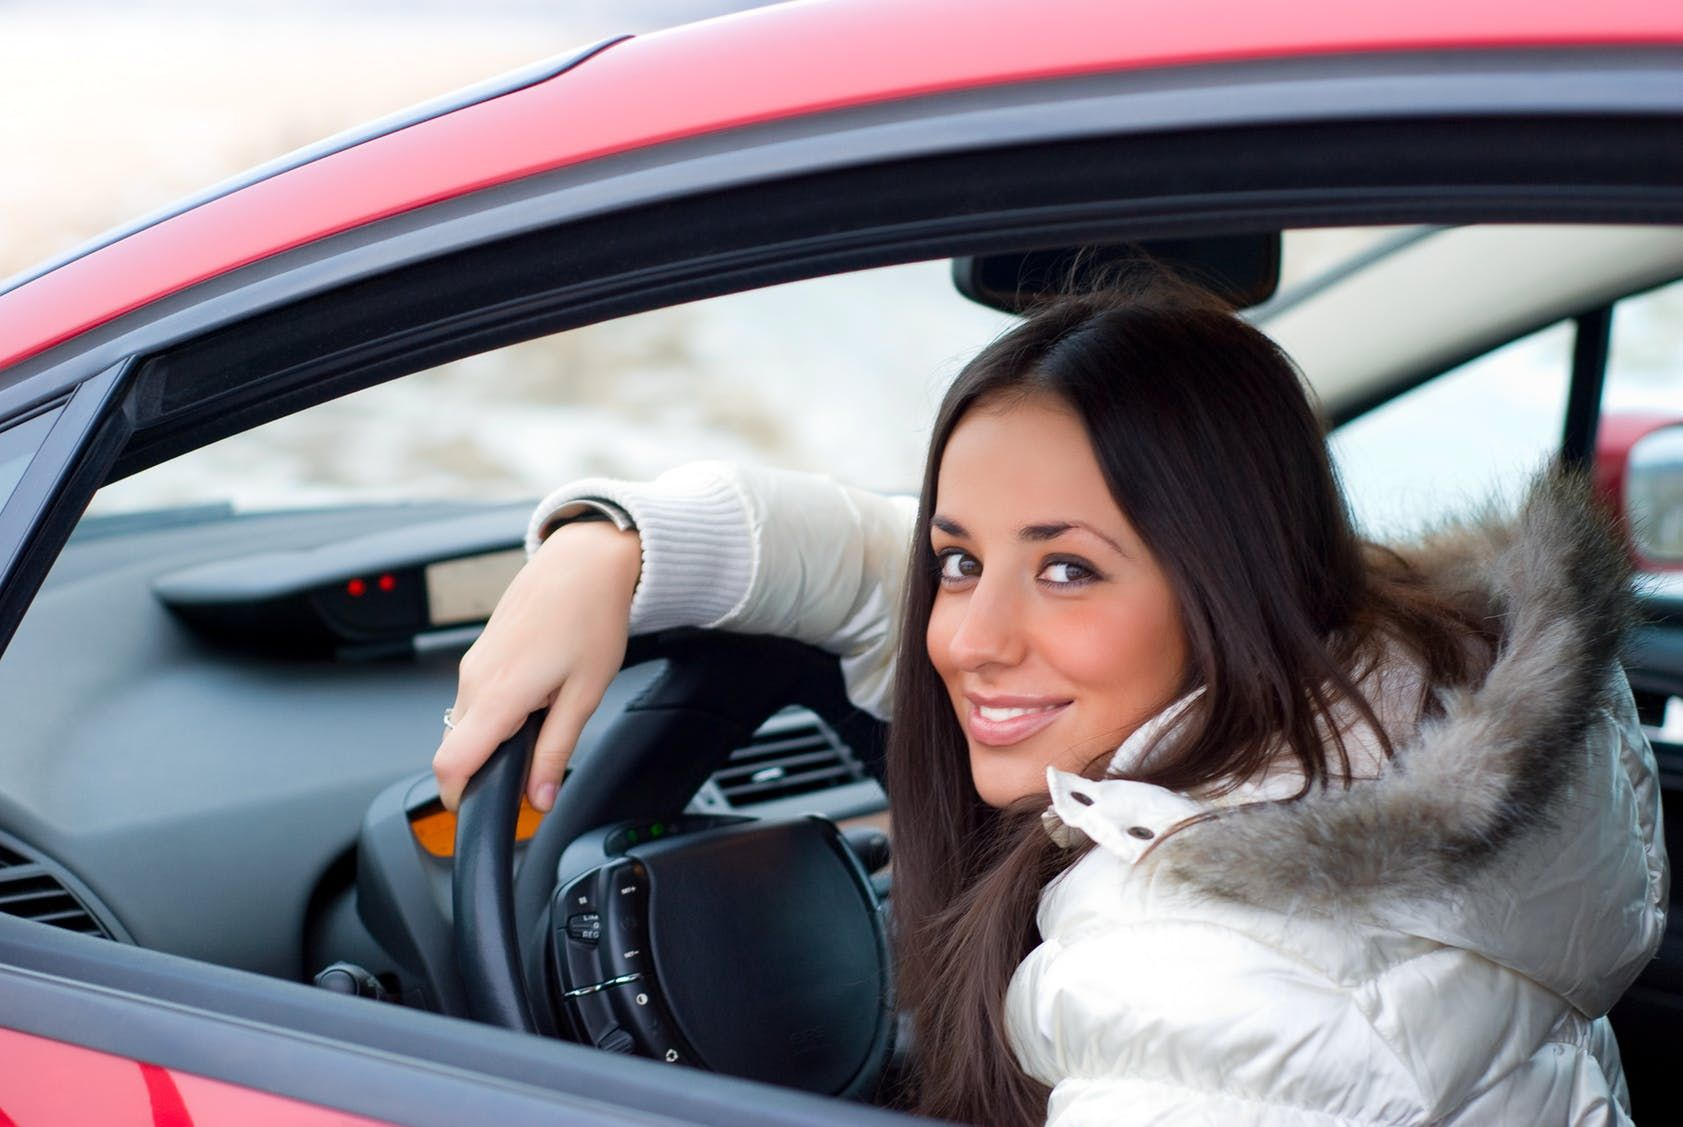 9 Things Under 25 That Will Keep You Safe While Driving